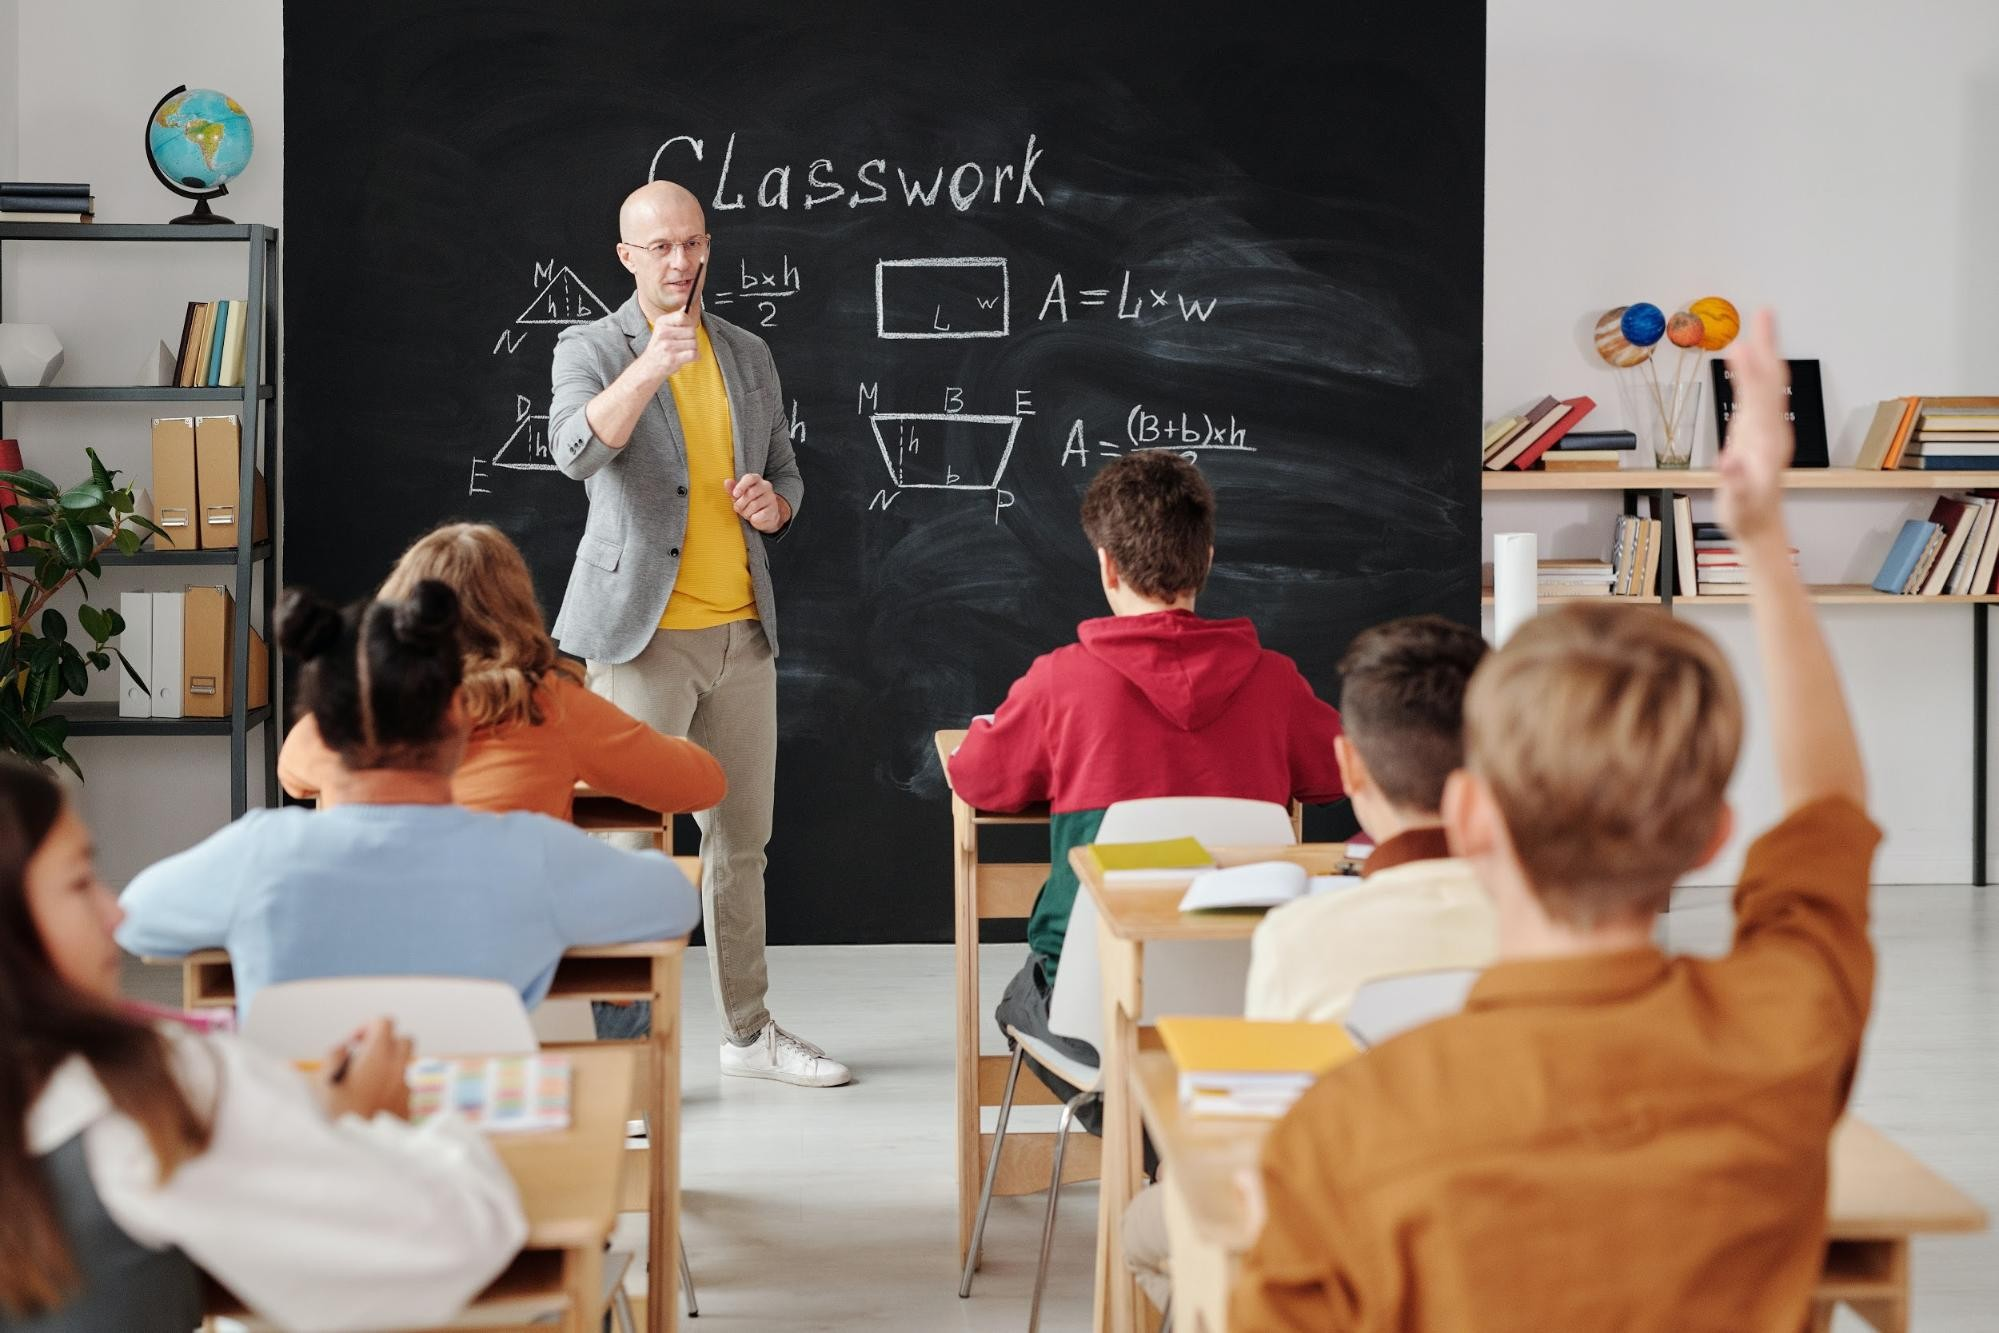 Teacher standing in a classroom in front of a blackboard, pointing at a student who is raising their hand.